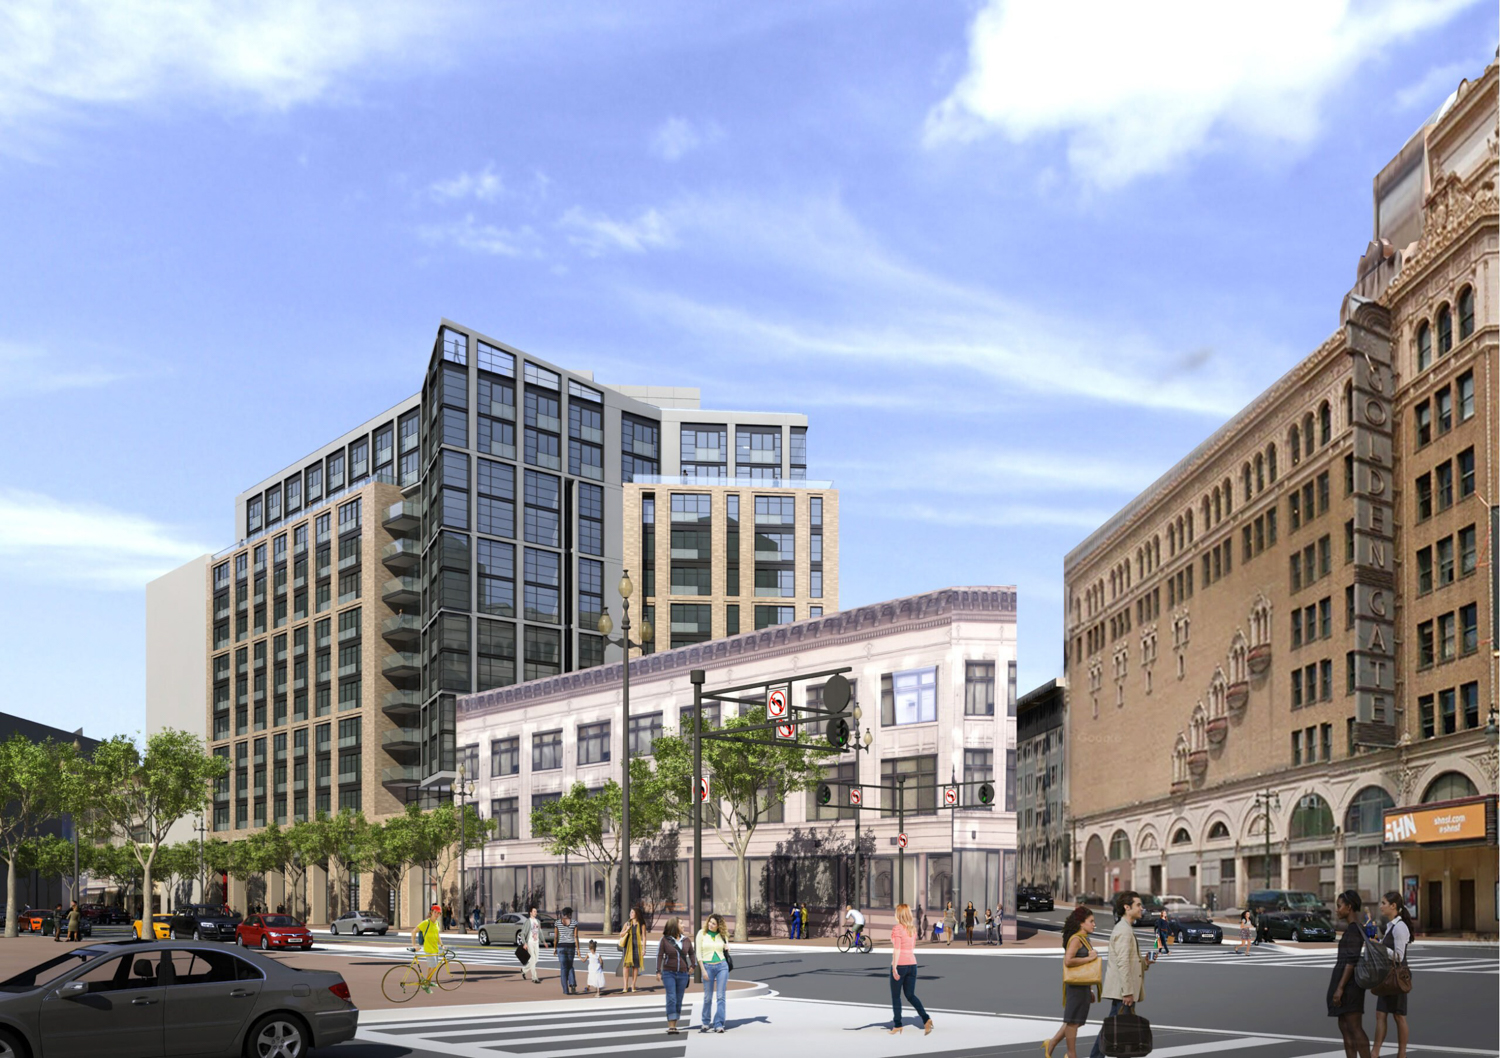 1028 Market Street main view, rendering of design by Solomon Cordwell Buenz